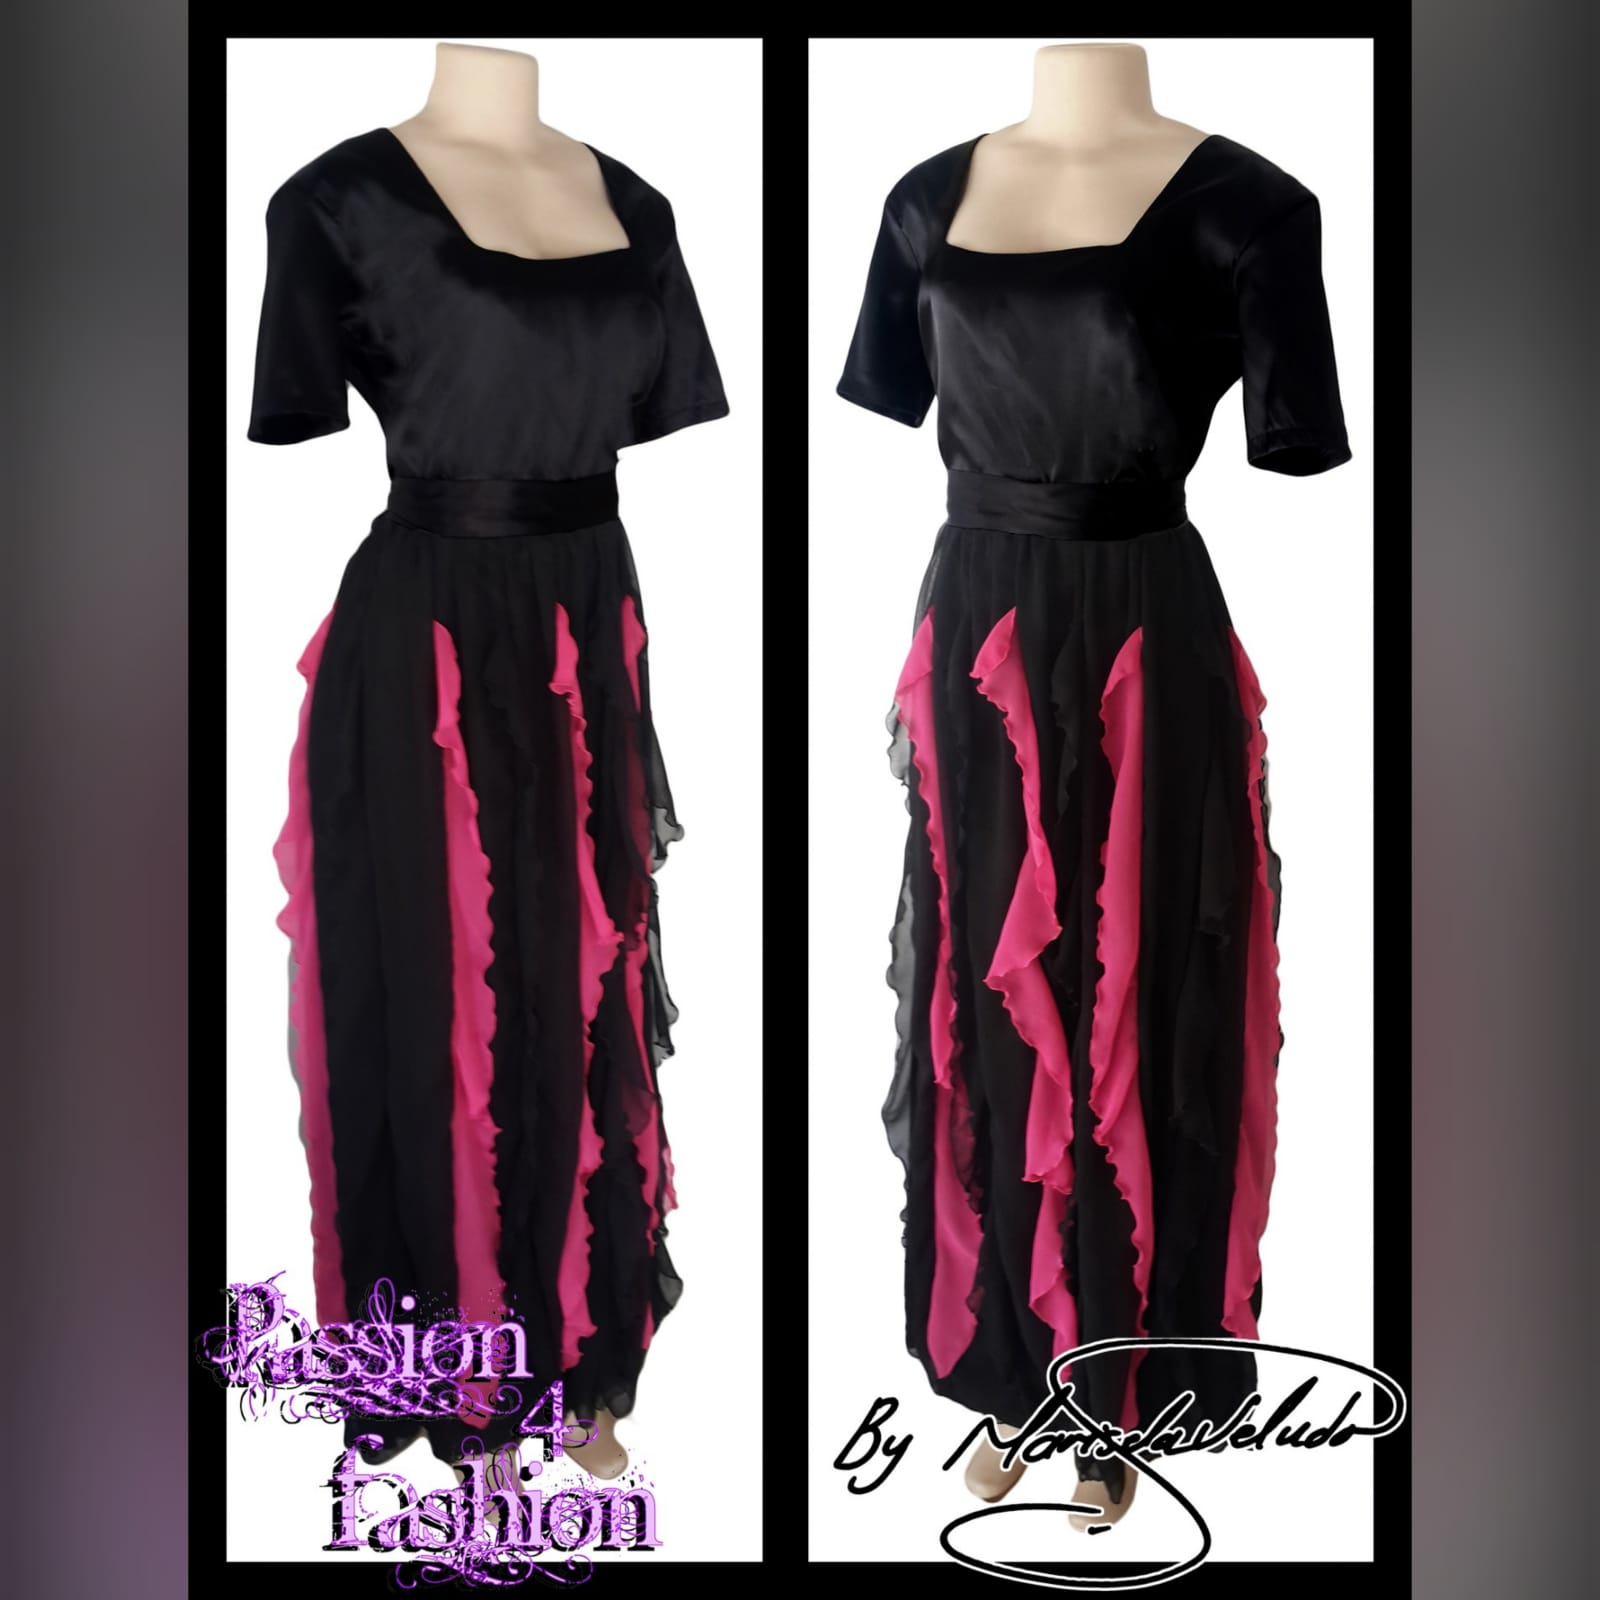 Black and pink evening dress 3 black & pink evening dress with square neckline short sleeves & vertical pink and black frills